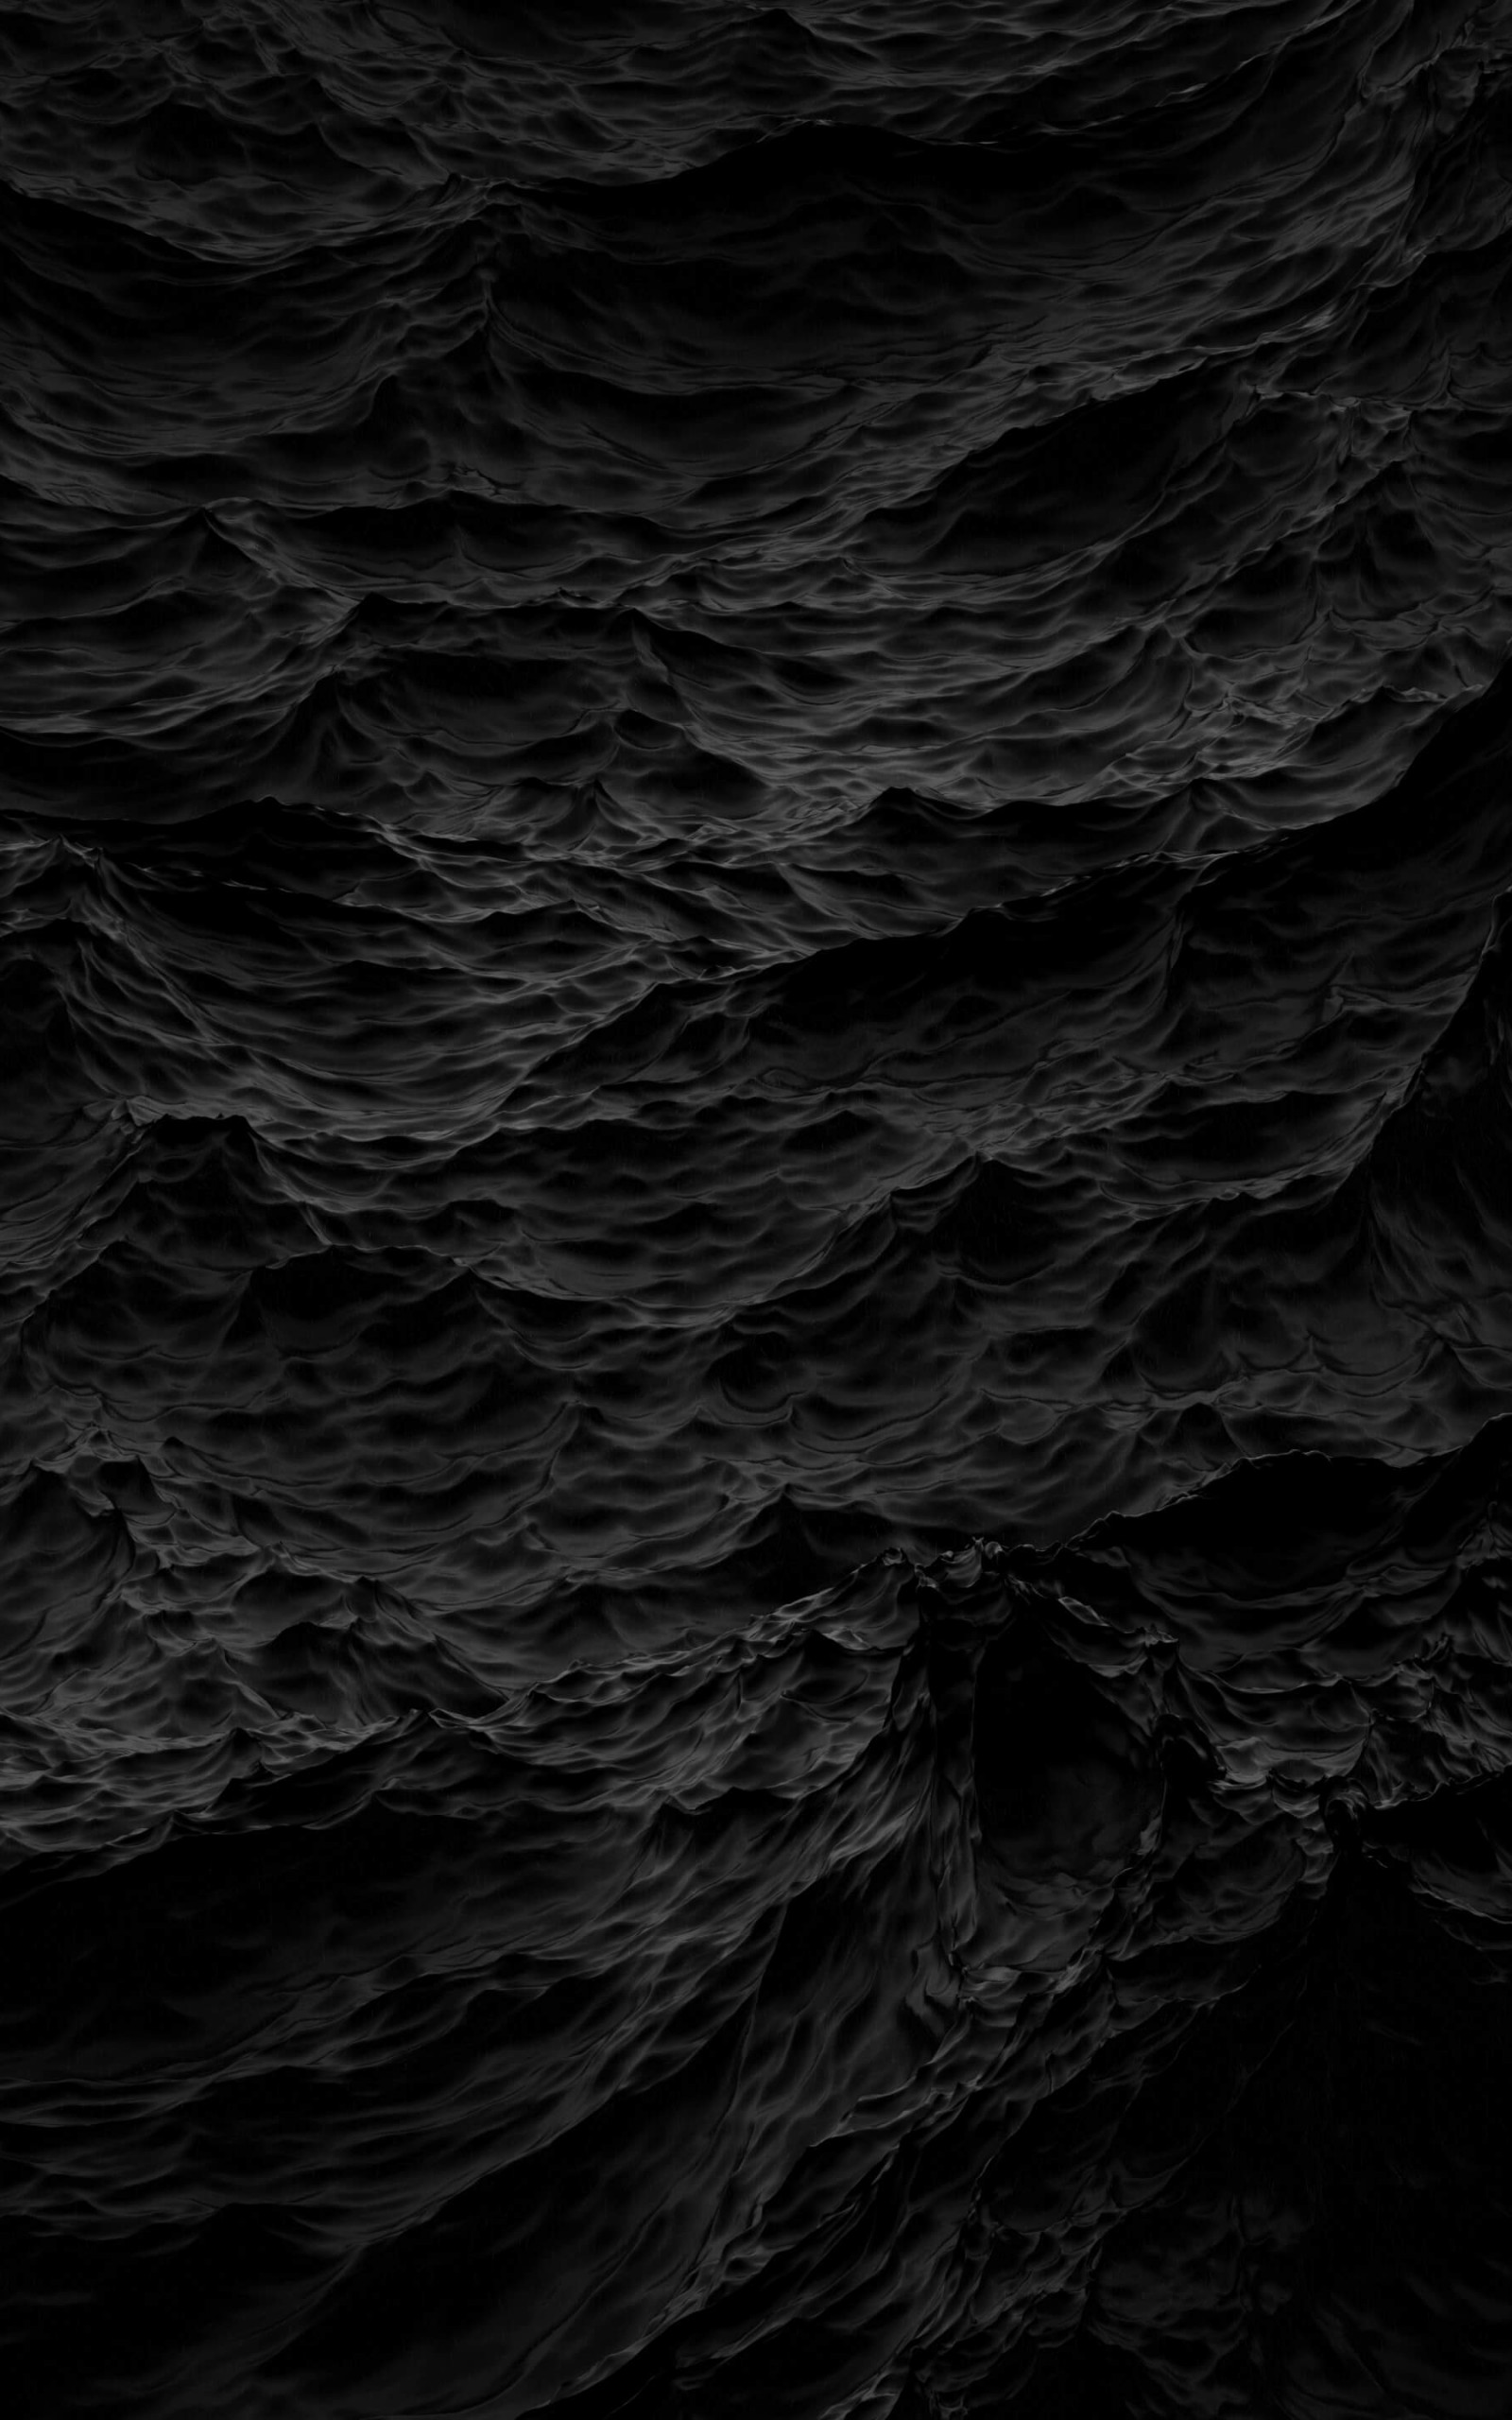 Black Waves Wallpaper for Amazon Kindle Fire HDX 8.9